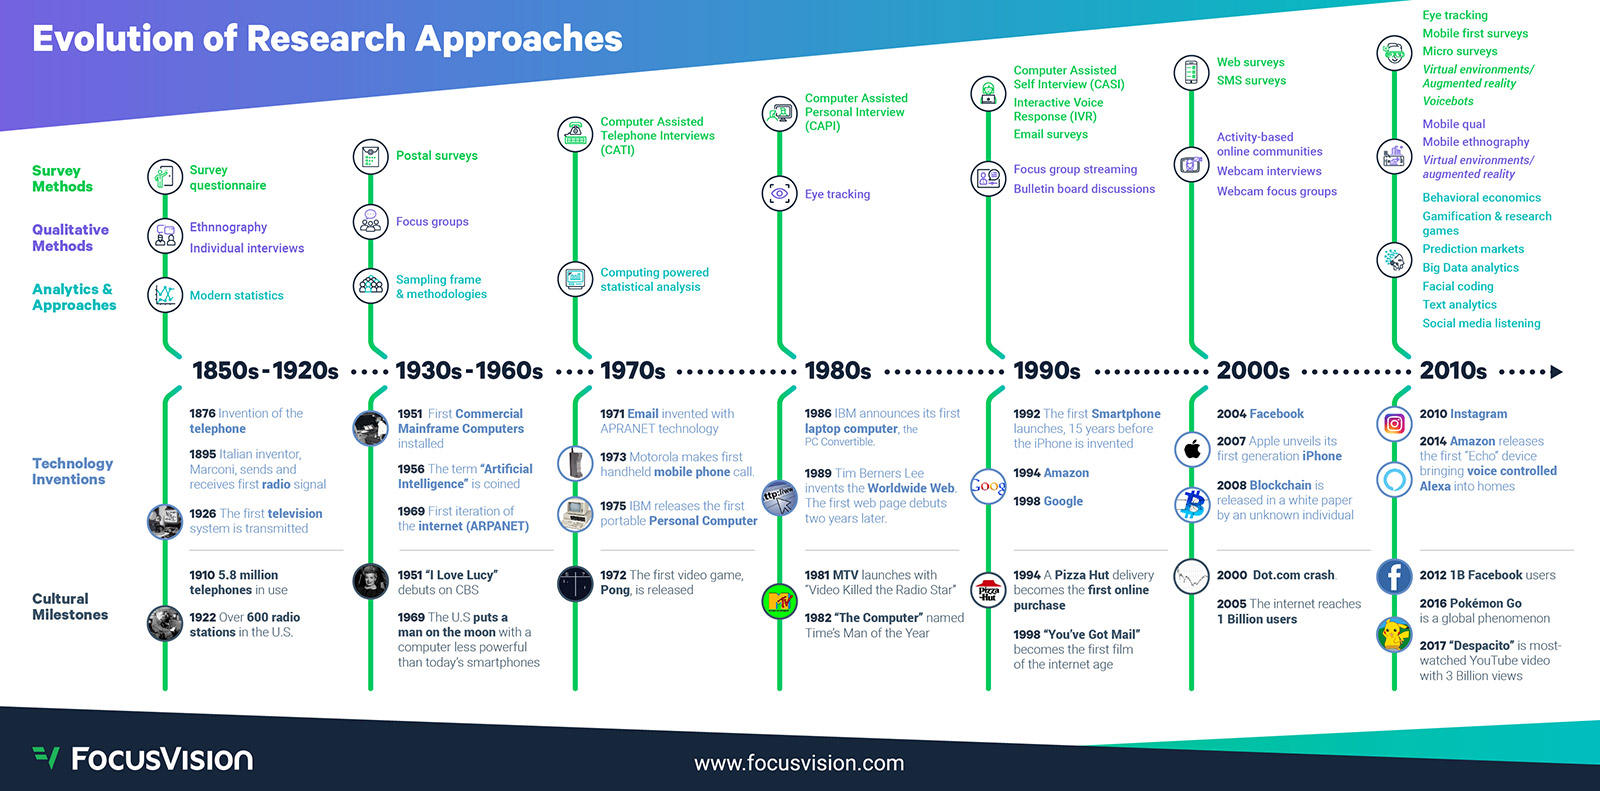 Evolution of Research Approaches Infographic